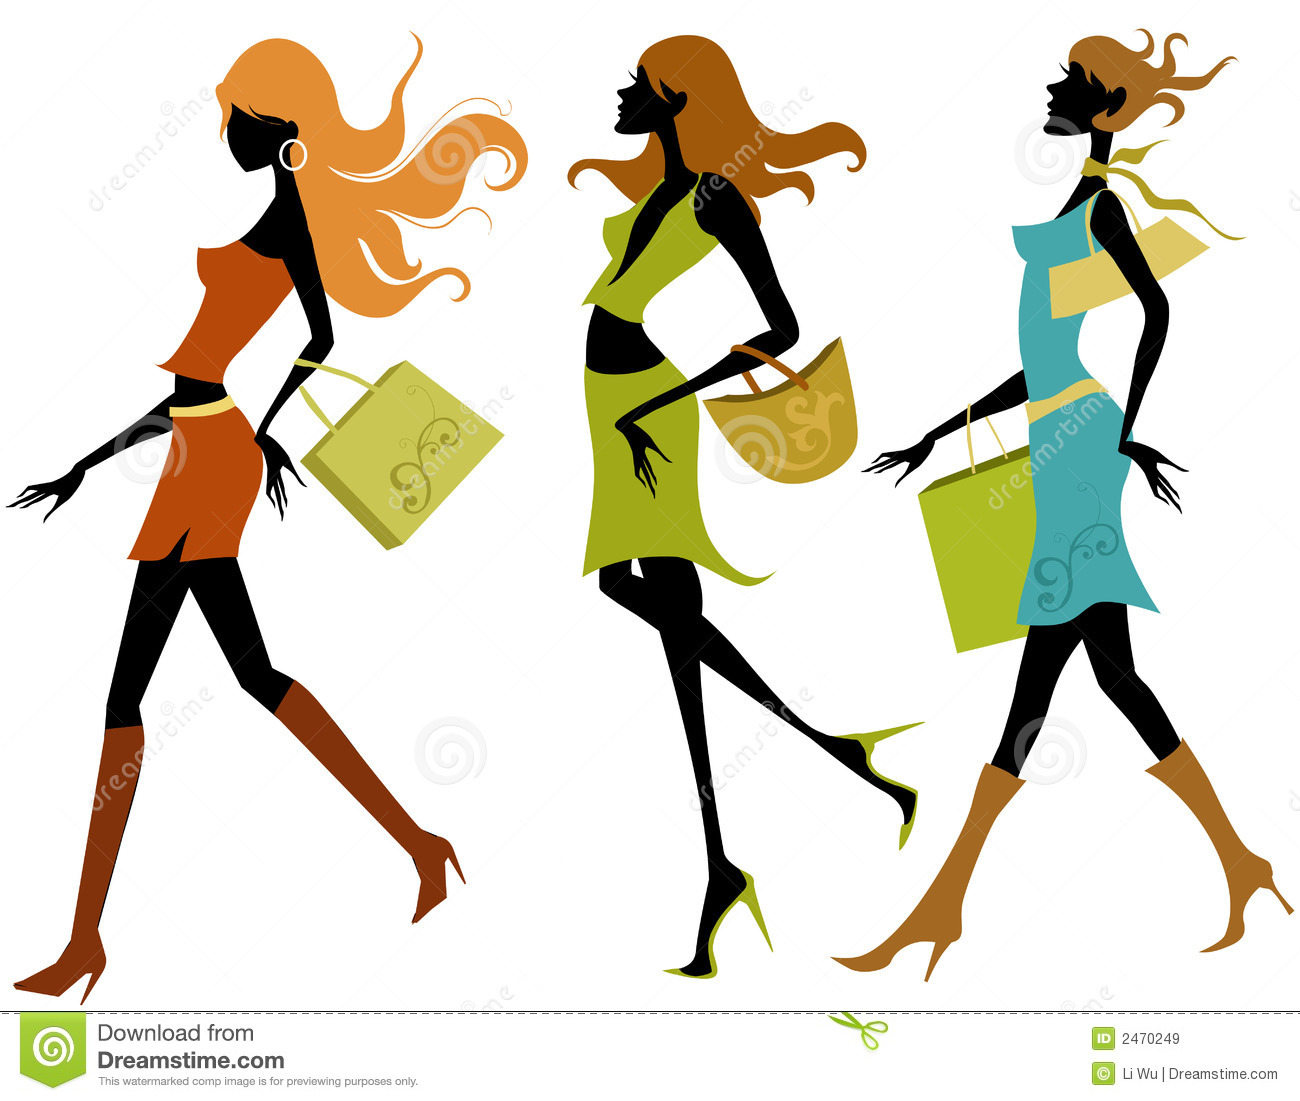 Fashion clipart style. Free download best on